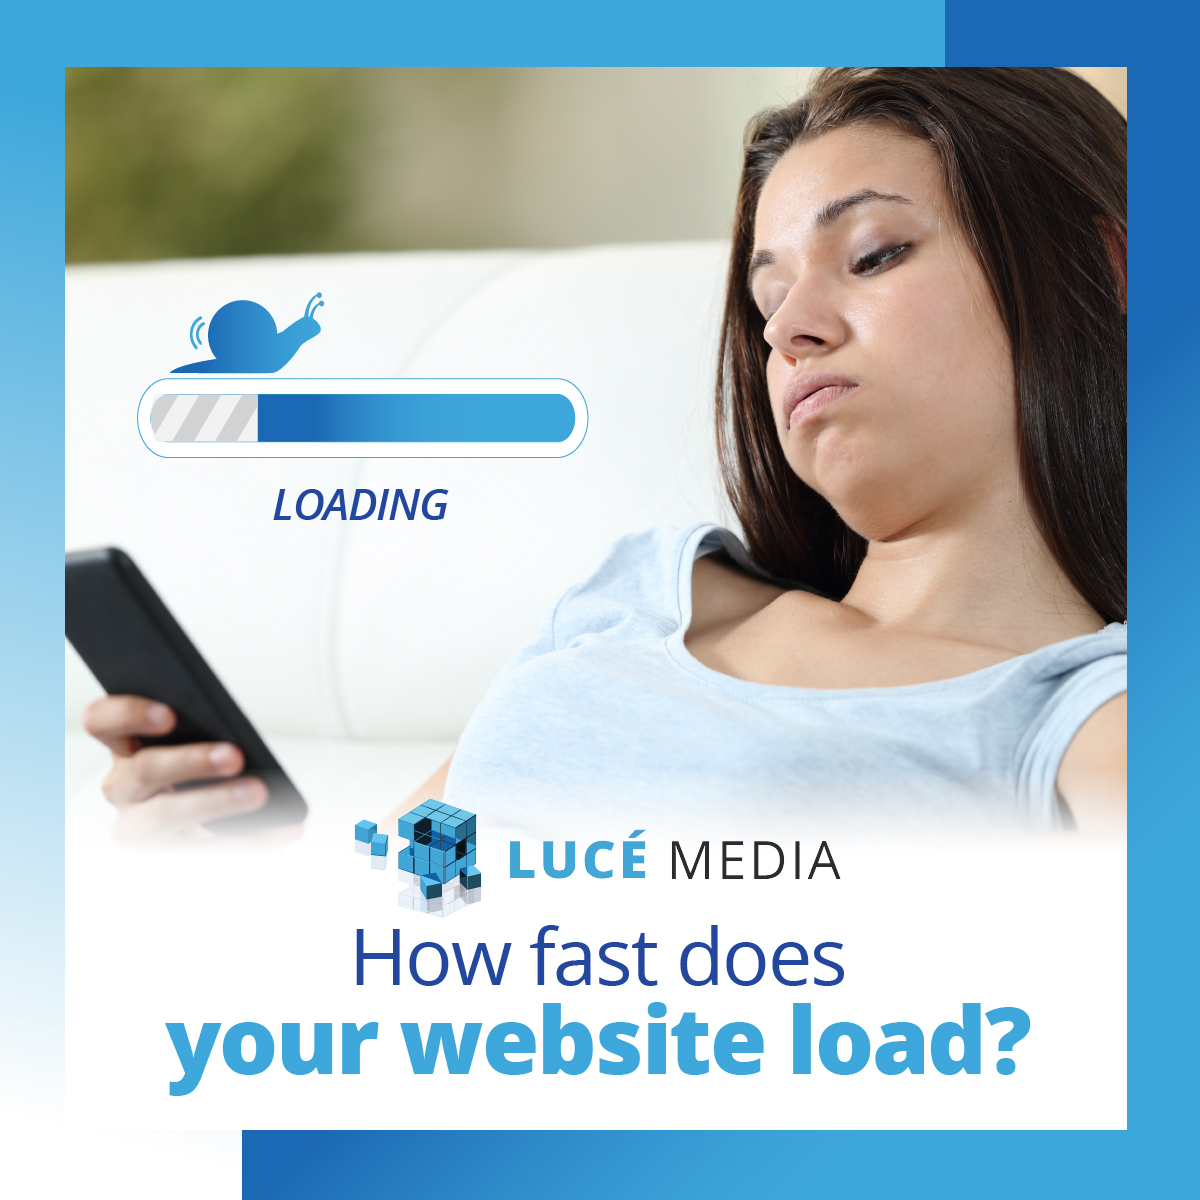 Are you paying attention to your website load speed? Website speed affects your Google search ranking, and will lead to an instant drop-off in visitors to your page.    #Facebook #Instagram #Twitter #Google #ProsperTX #McKinneyTX #FriscoTX #AllenTX #PlanoTX https://t.co/Wx9qcOFitl